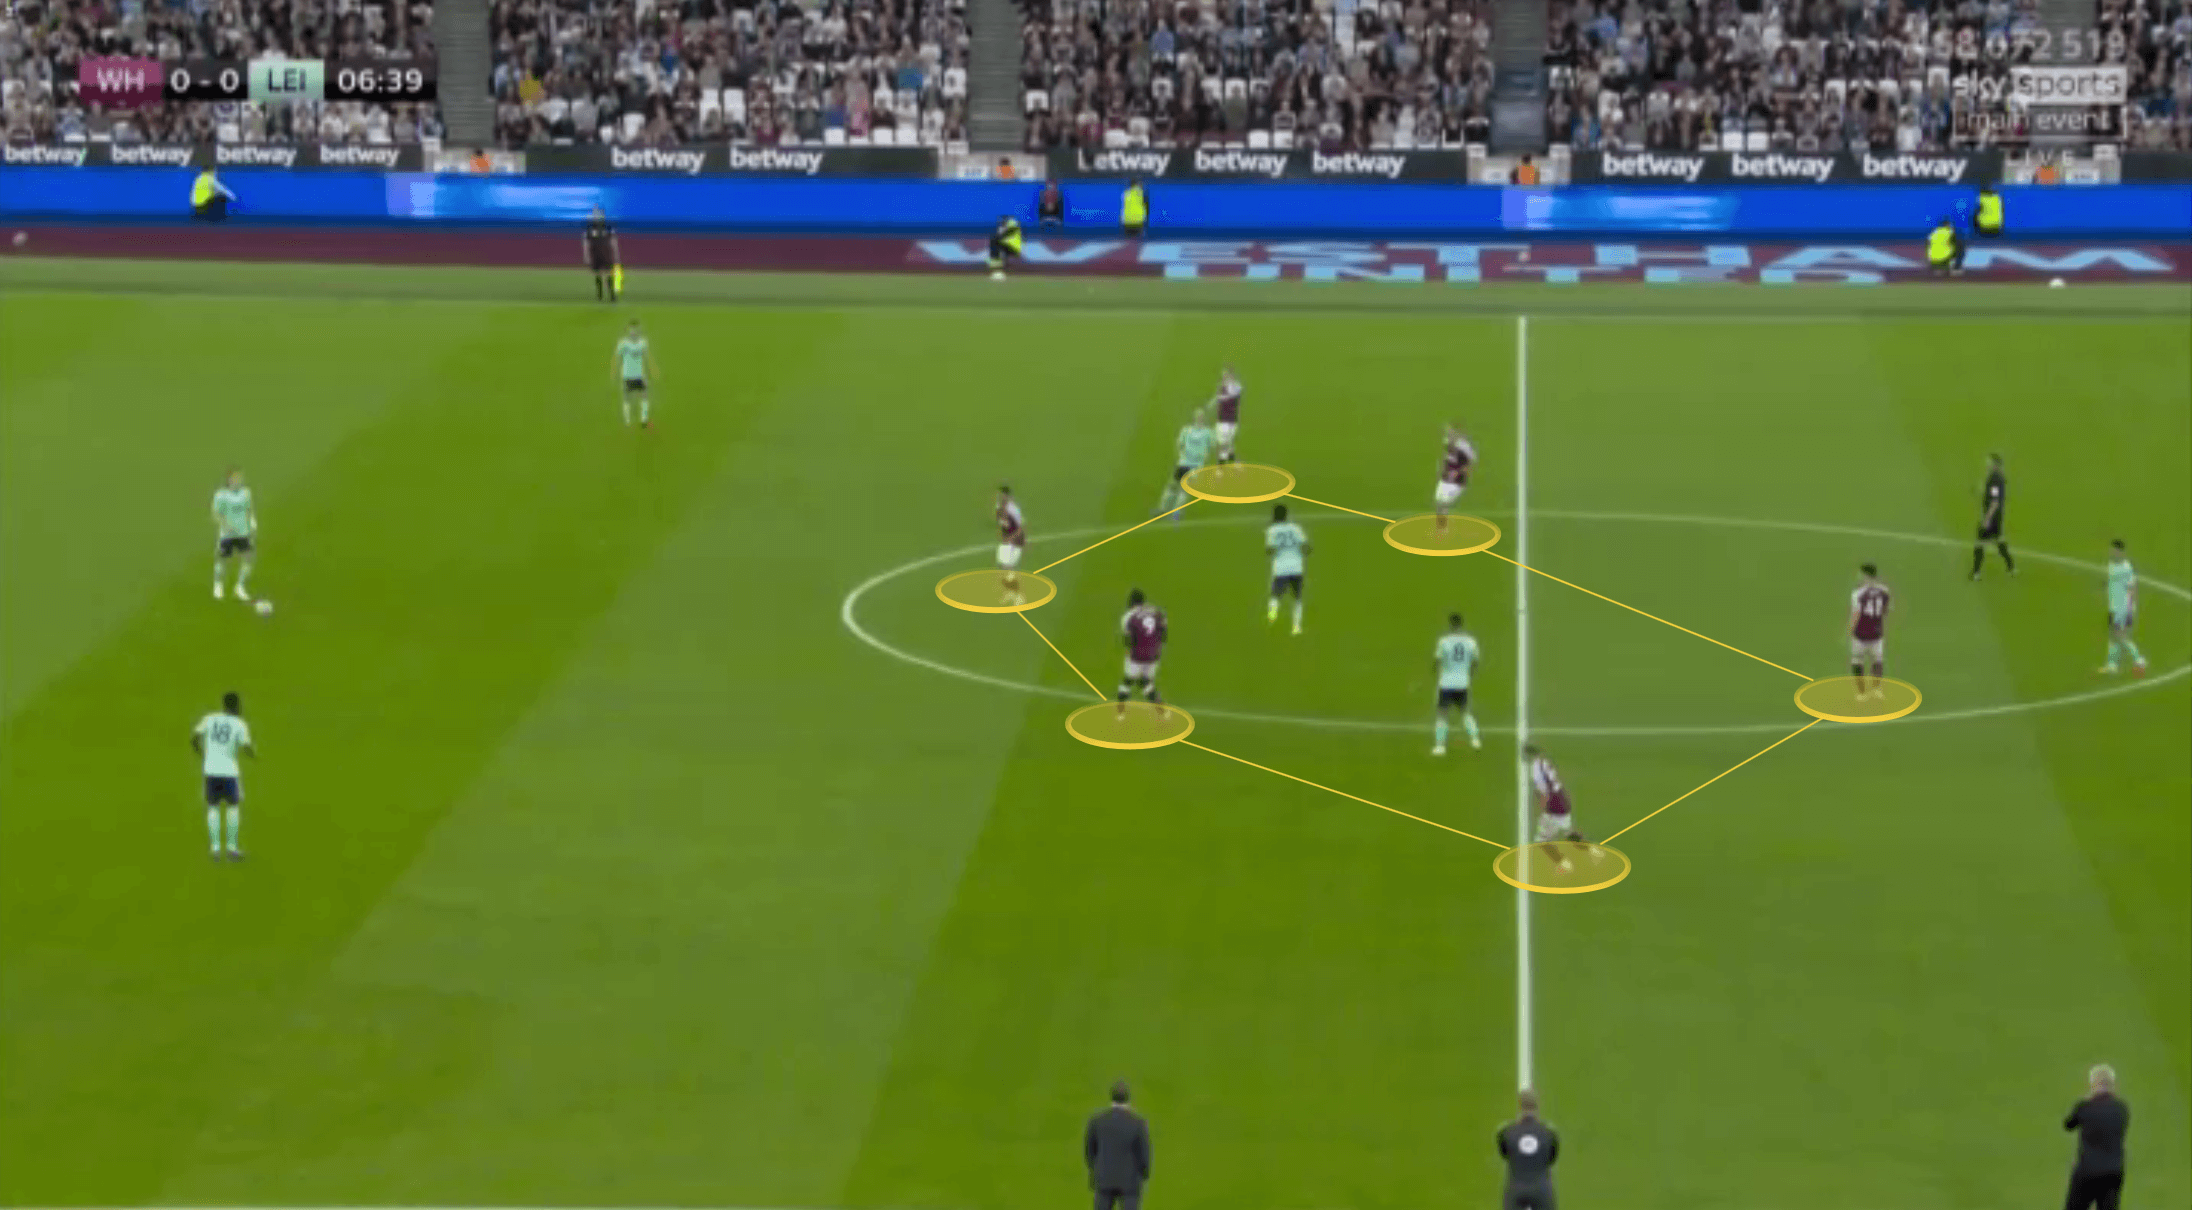 EPL 2021/22: West Ham United vs Leicester City - tactical analysis tactics